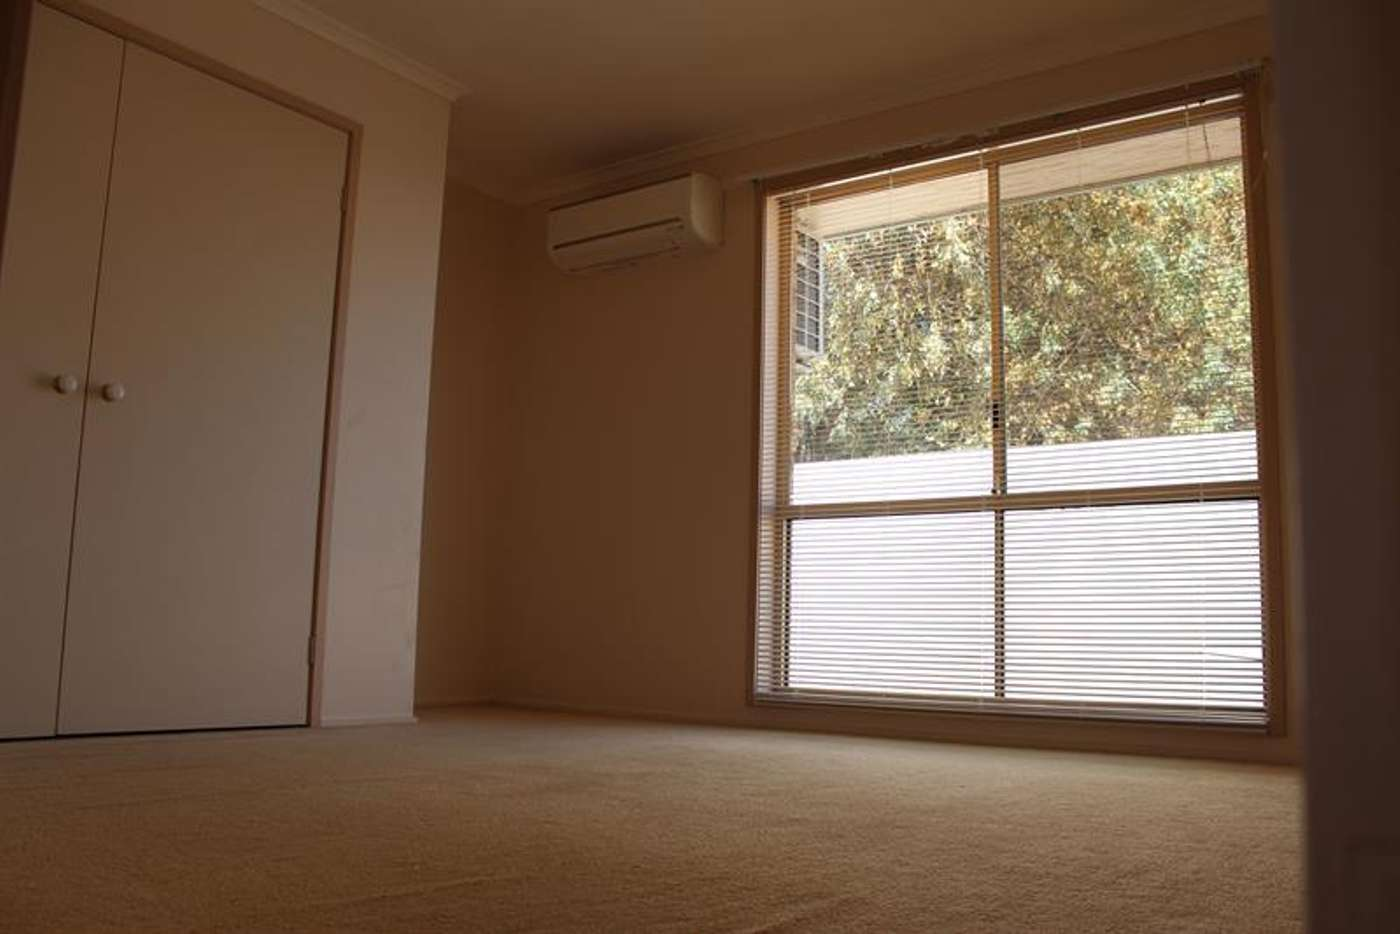 Seventh view of Homely house listing, 4 Sturtvale Ct, West Albury NSW 2640